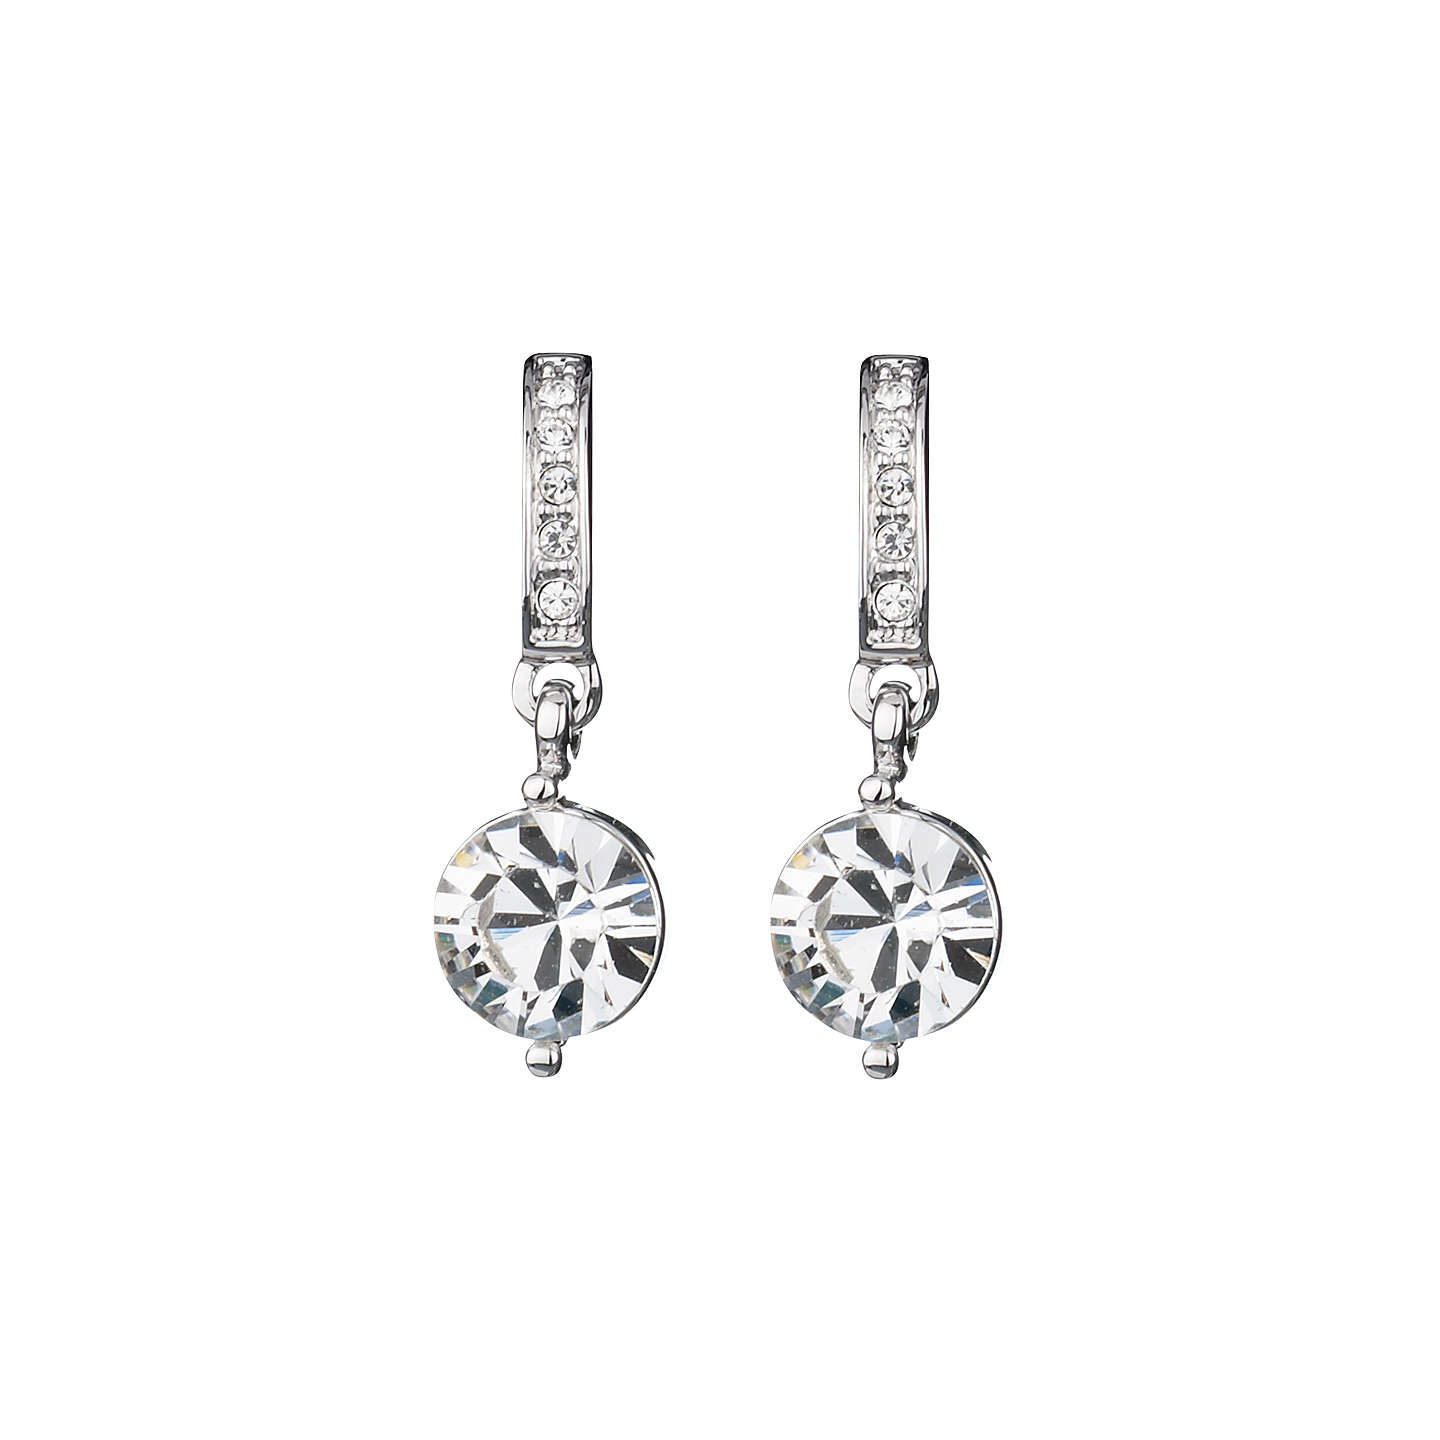 BuyFinesse Swarovski Crystal Drop Earrings, Rhodium Online at johnlewis.com